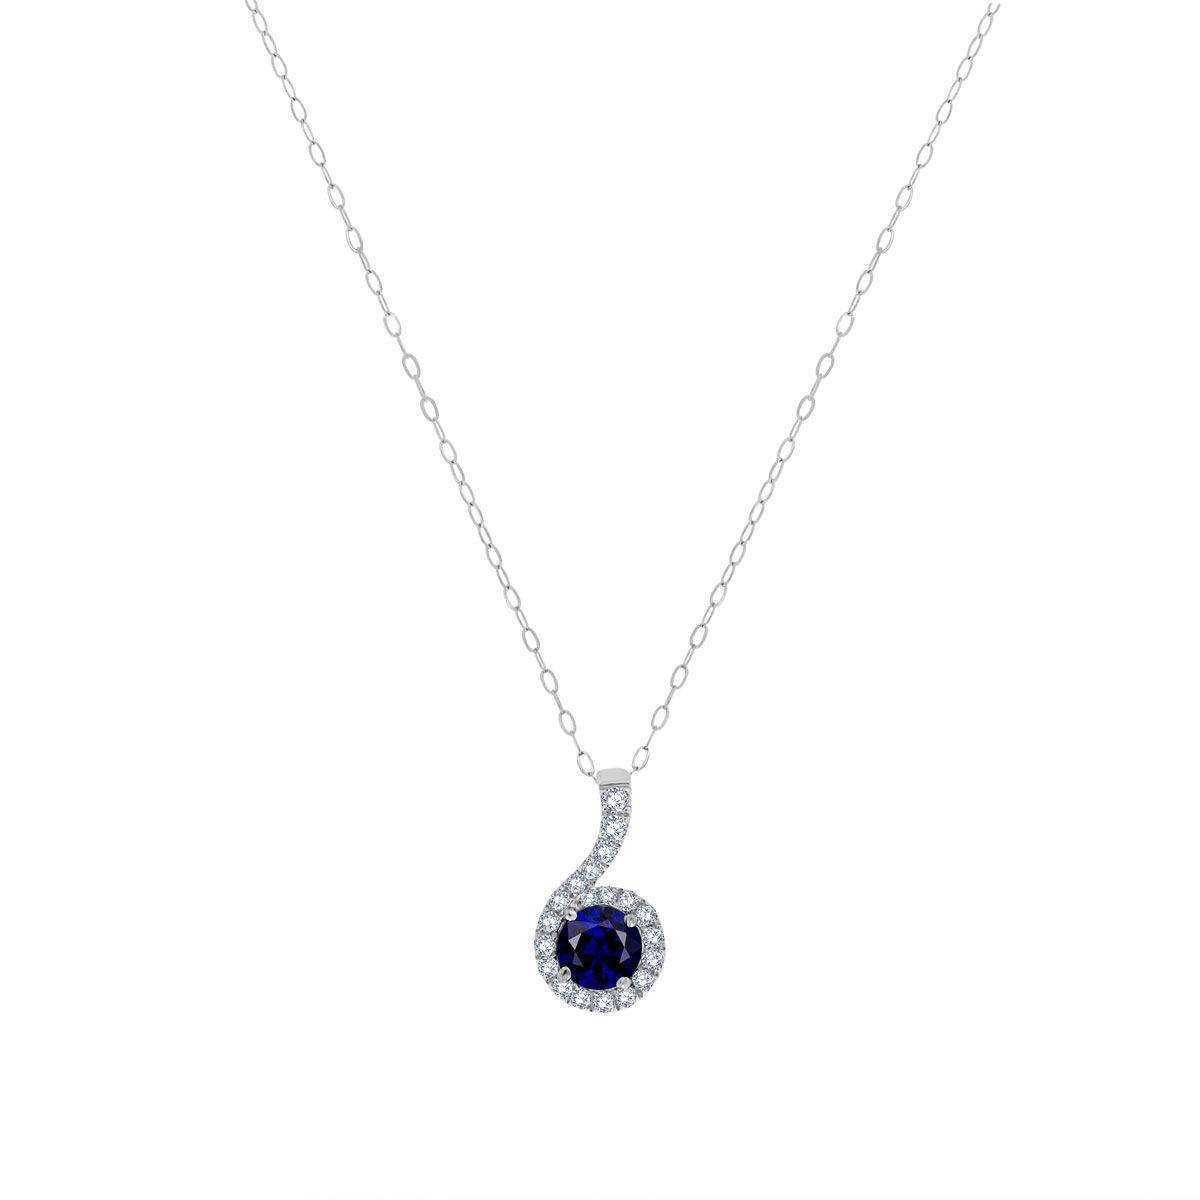 14K White Gold Blue Sapphire & Diamonds Halo Pendant (3/4 ct. tw)